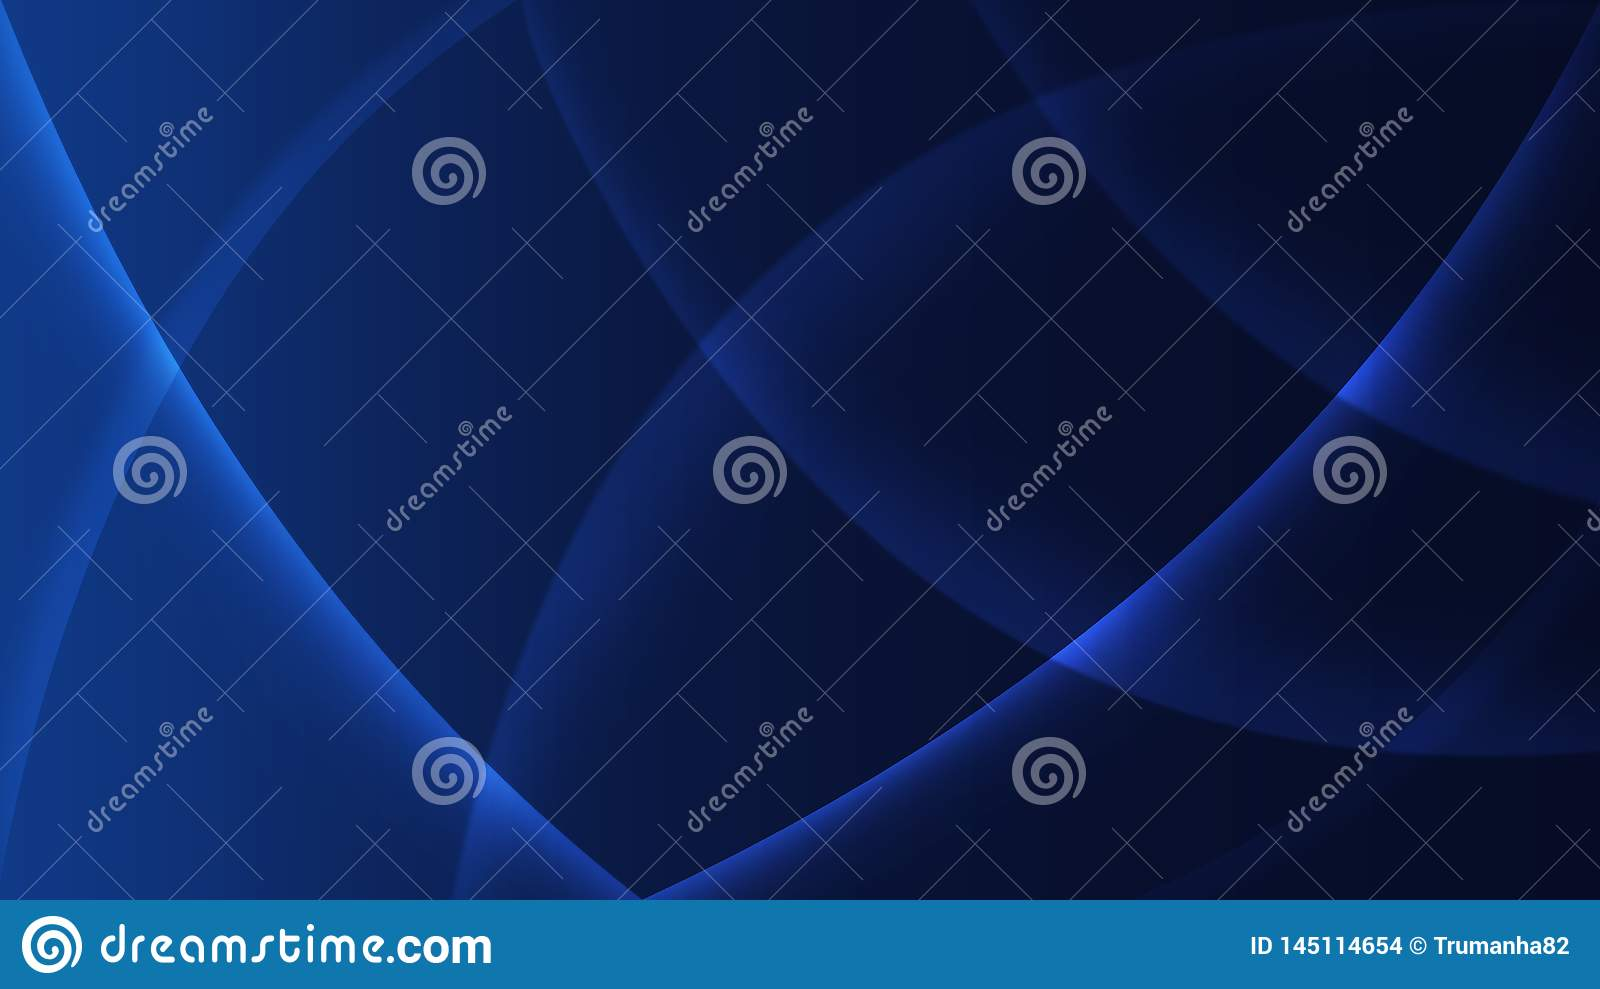 Abstract Shiny Curves in Blurred Dark Blue Background